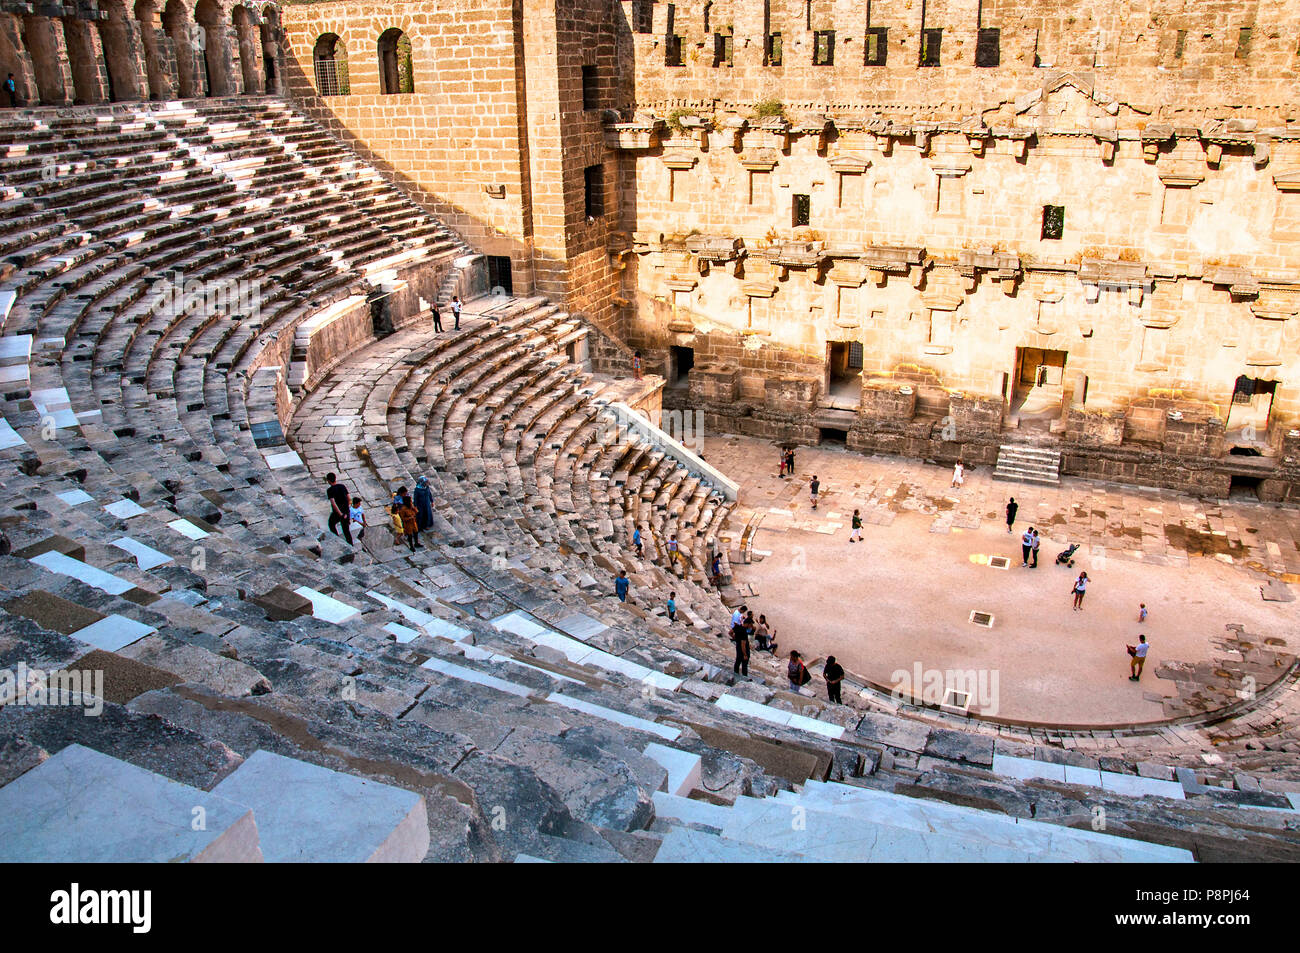 Antalya, TURKEY - June 16, 2018: Located in Antalya, Turkey. Aspendos theater is being visited by tourists - Stock Image